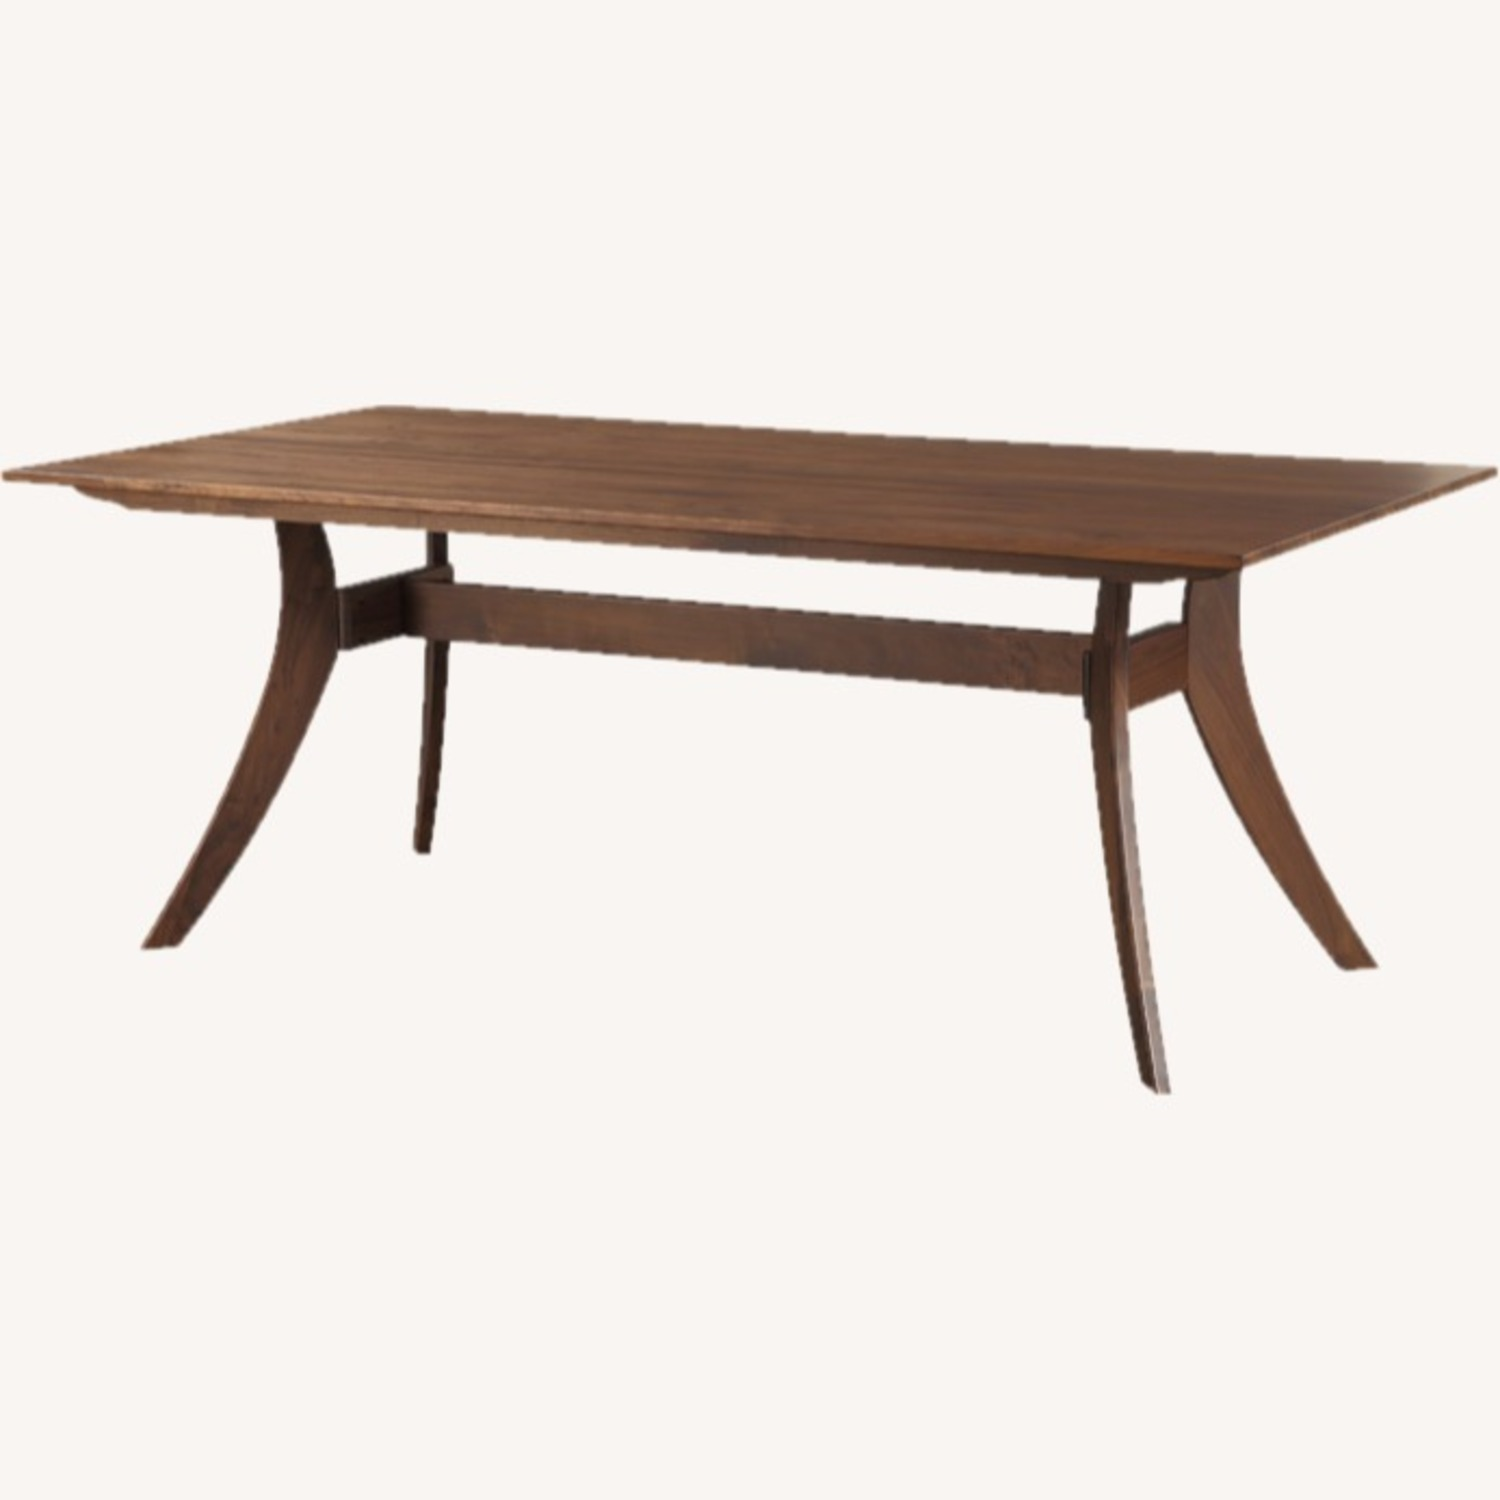 """Wayfair 63"""" Transitional Solid Wood Dining Table - image-2"""